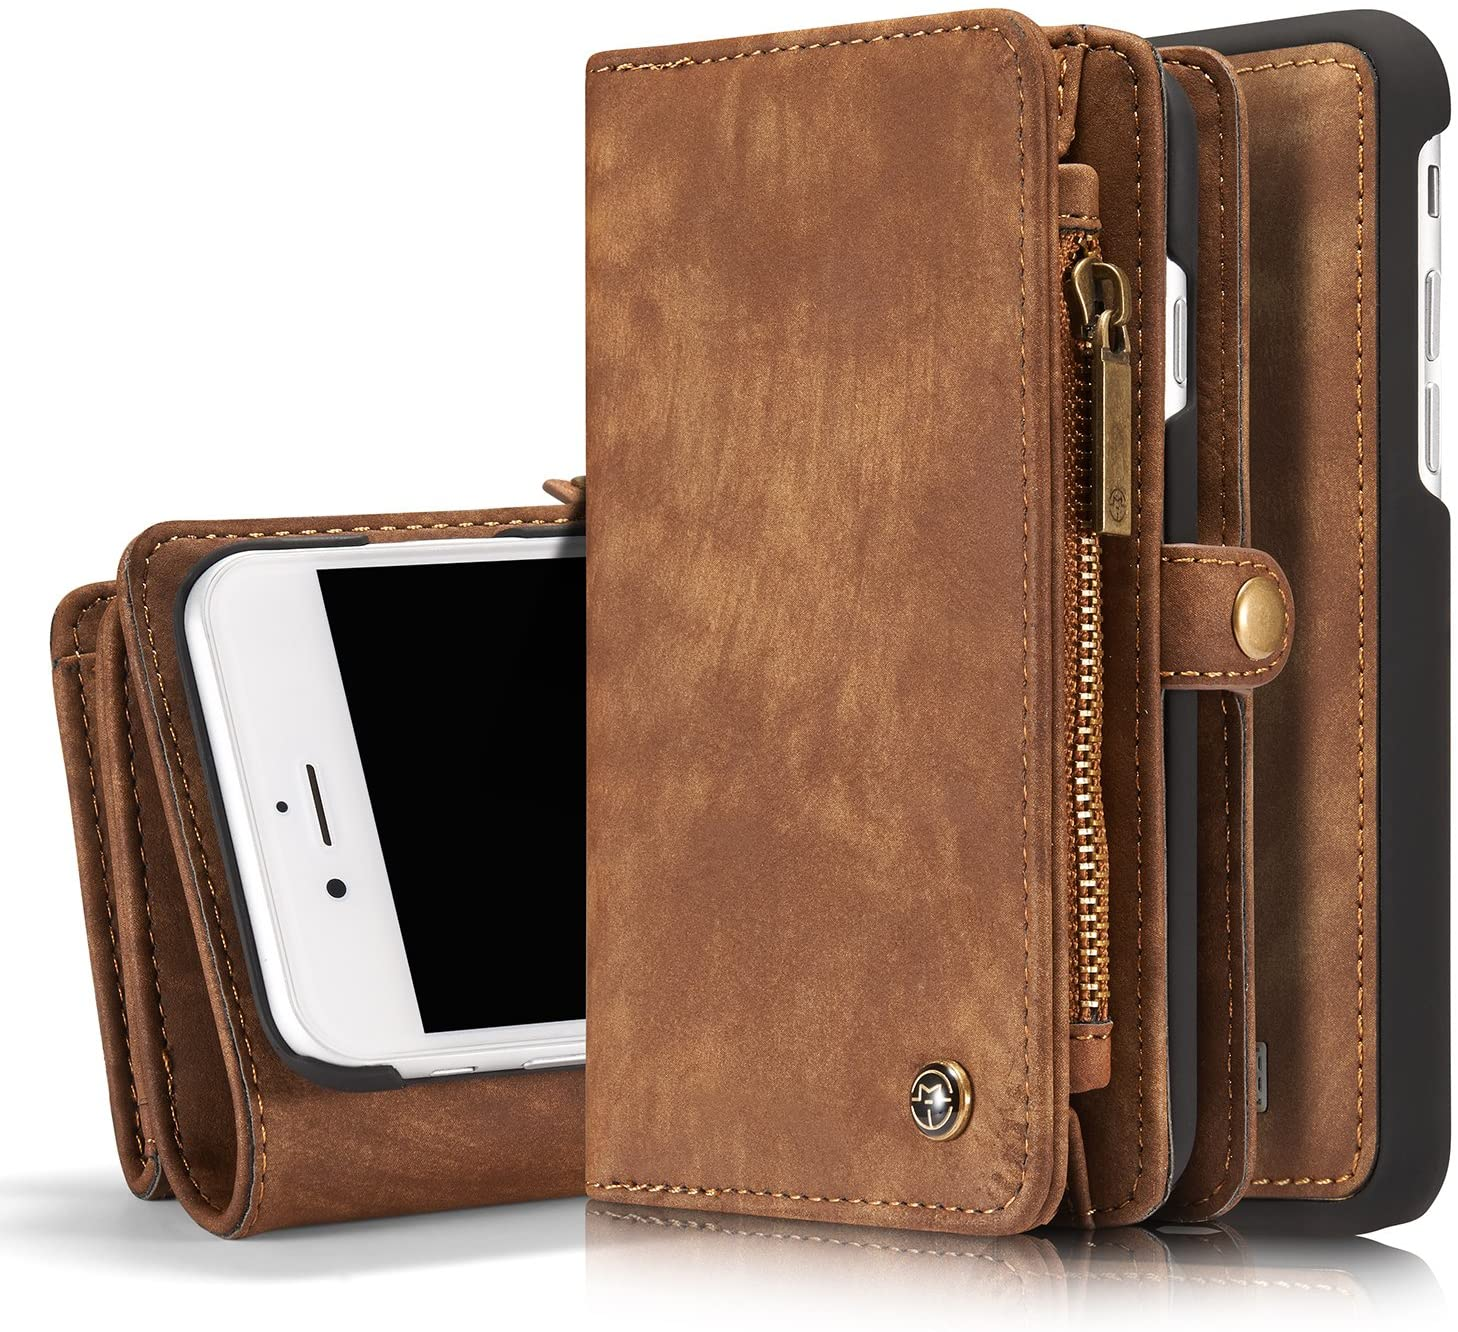 MOONORN iPhone 7 / iPhone 8 Wallet Case - Detachable Leather Phone Wallet Magnetic Flip Case Shockproof Cell Phone Case with Credit Card Slots (Brown)